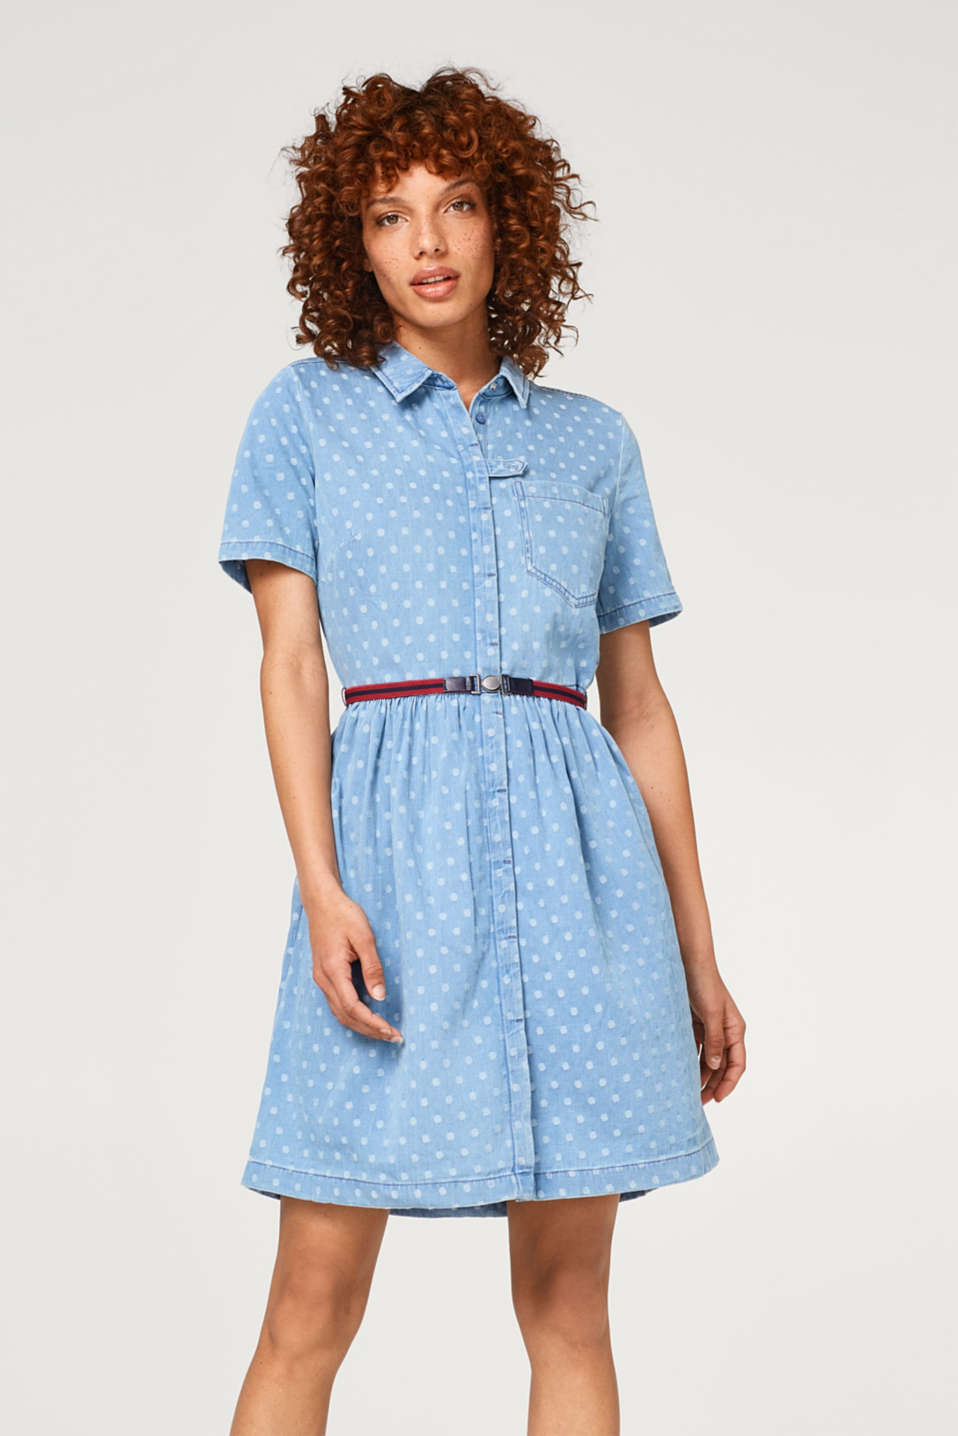 edc - Denim dress with polka dots and a belt, 100% cotton